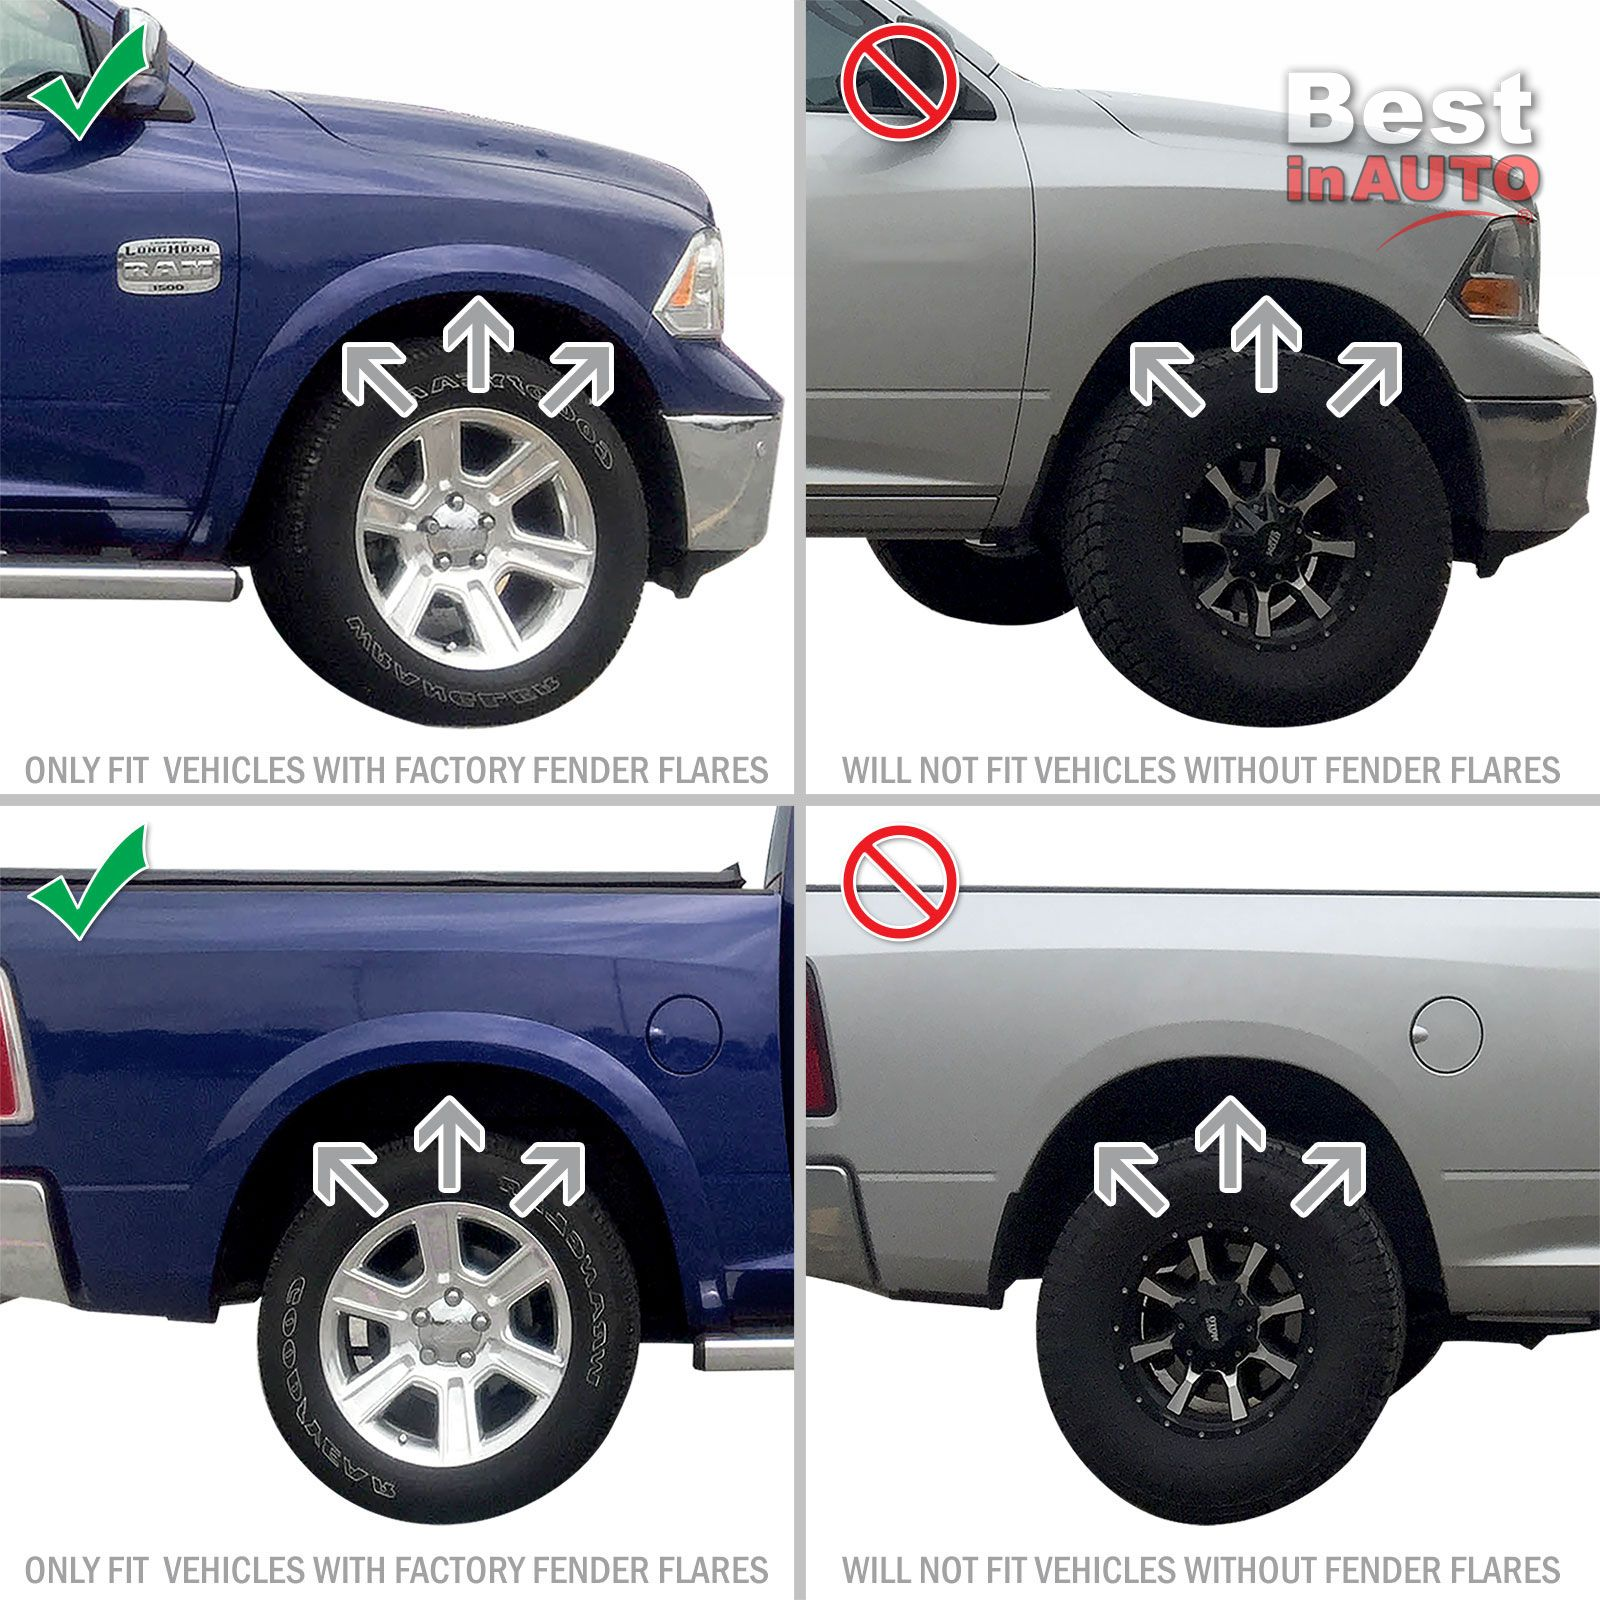 Only fits Vehicles with OEM Fender Flares Red Hound Auto Heavy Duty Molded Splash Guards Mud Flaps Compatible with Dodge//Ram Front and Rear 4 Piece Set 2009-2018 1500, 2010-2018 2500//3500